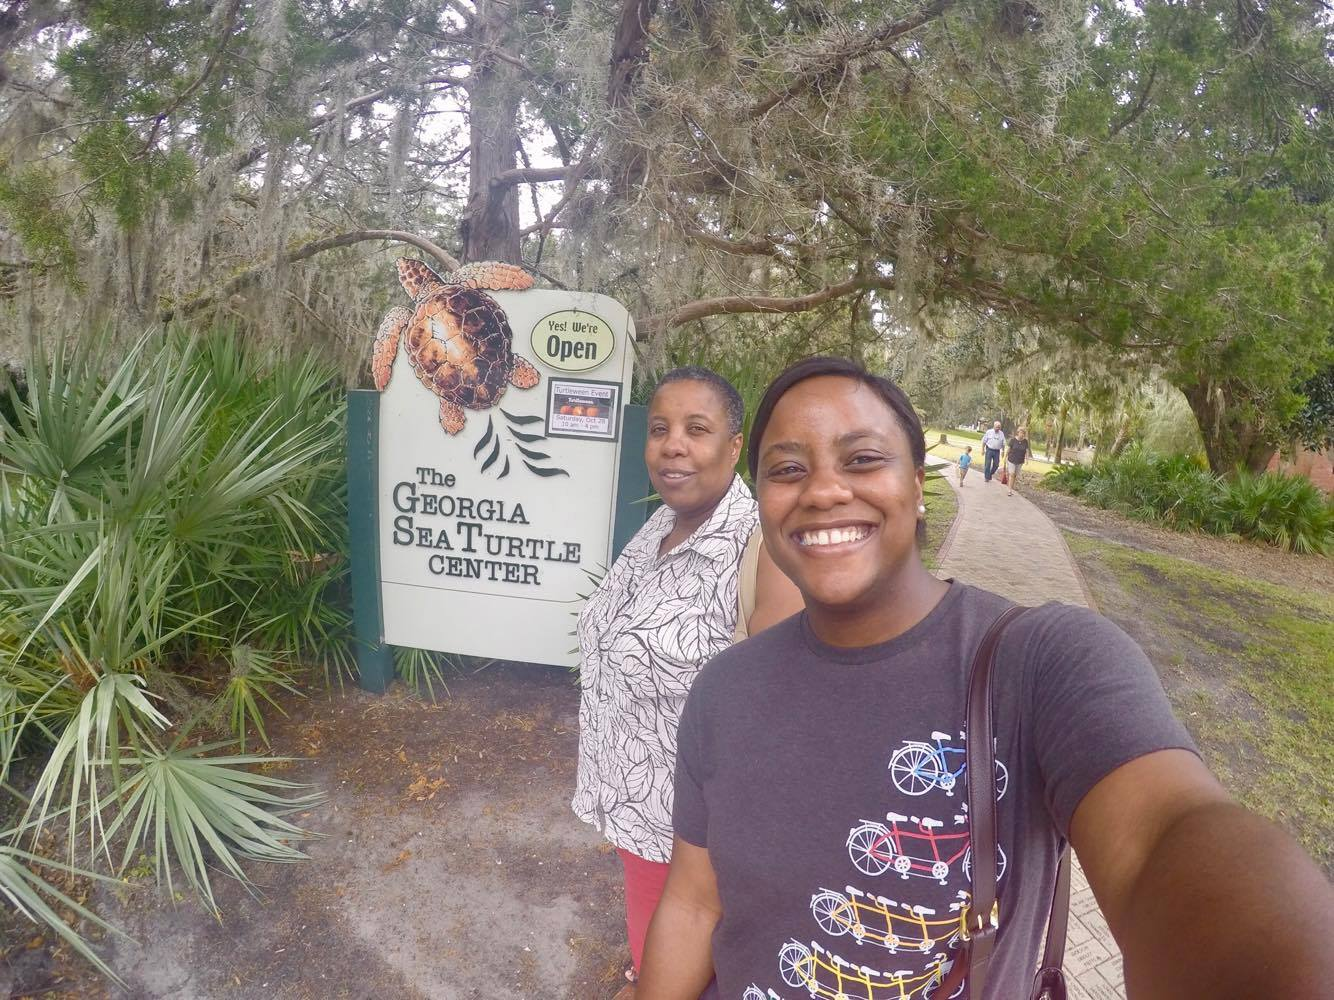 Mom and I in Front the of the Welcome Sign - The Georgia Sea Turtle Center